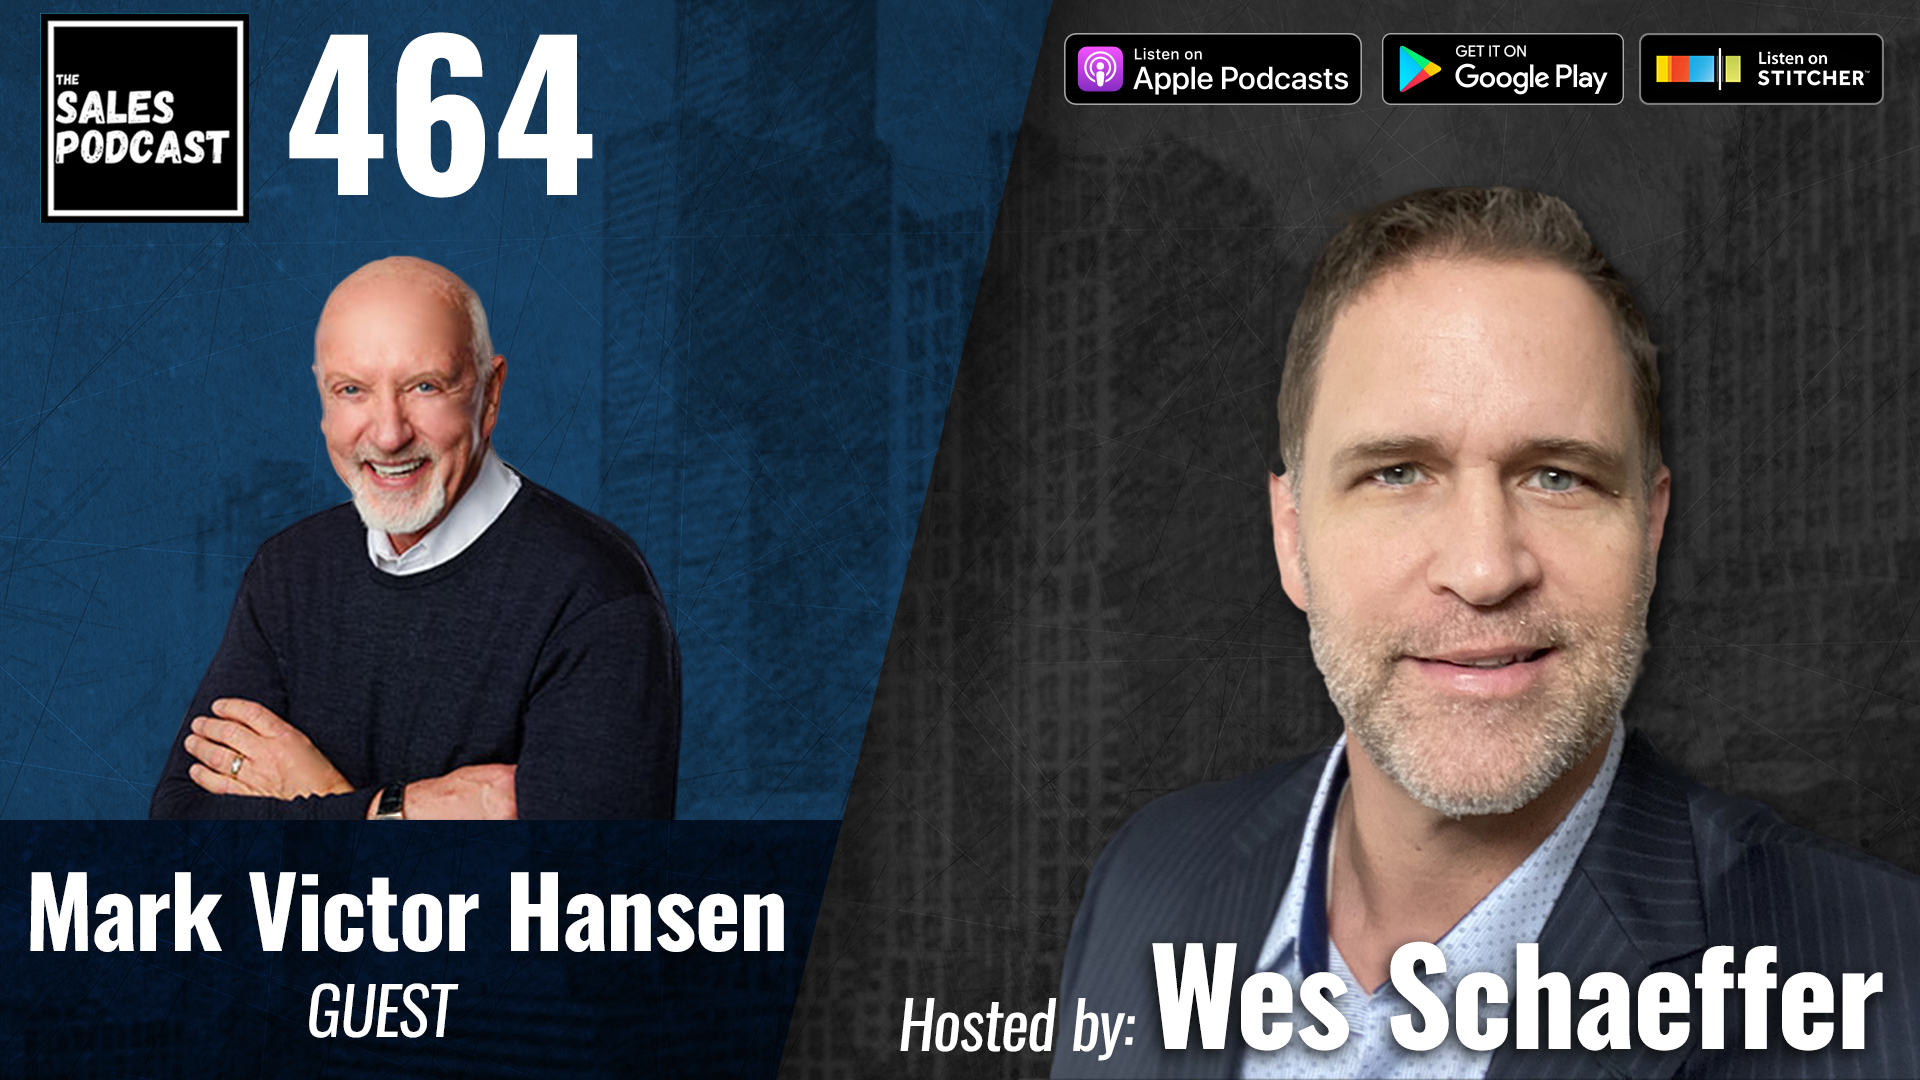 Mark Victor Hansen Says 'Ask To Reach Your Destiny' on The Sales Podcast with Wes Schaeffer, The Sales Whisperer®